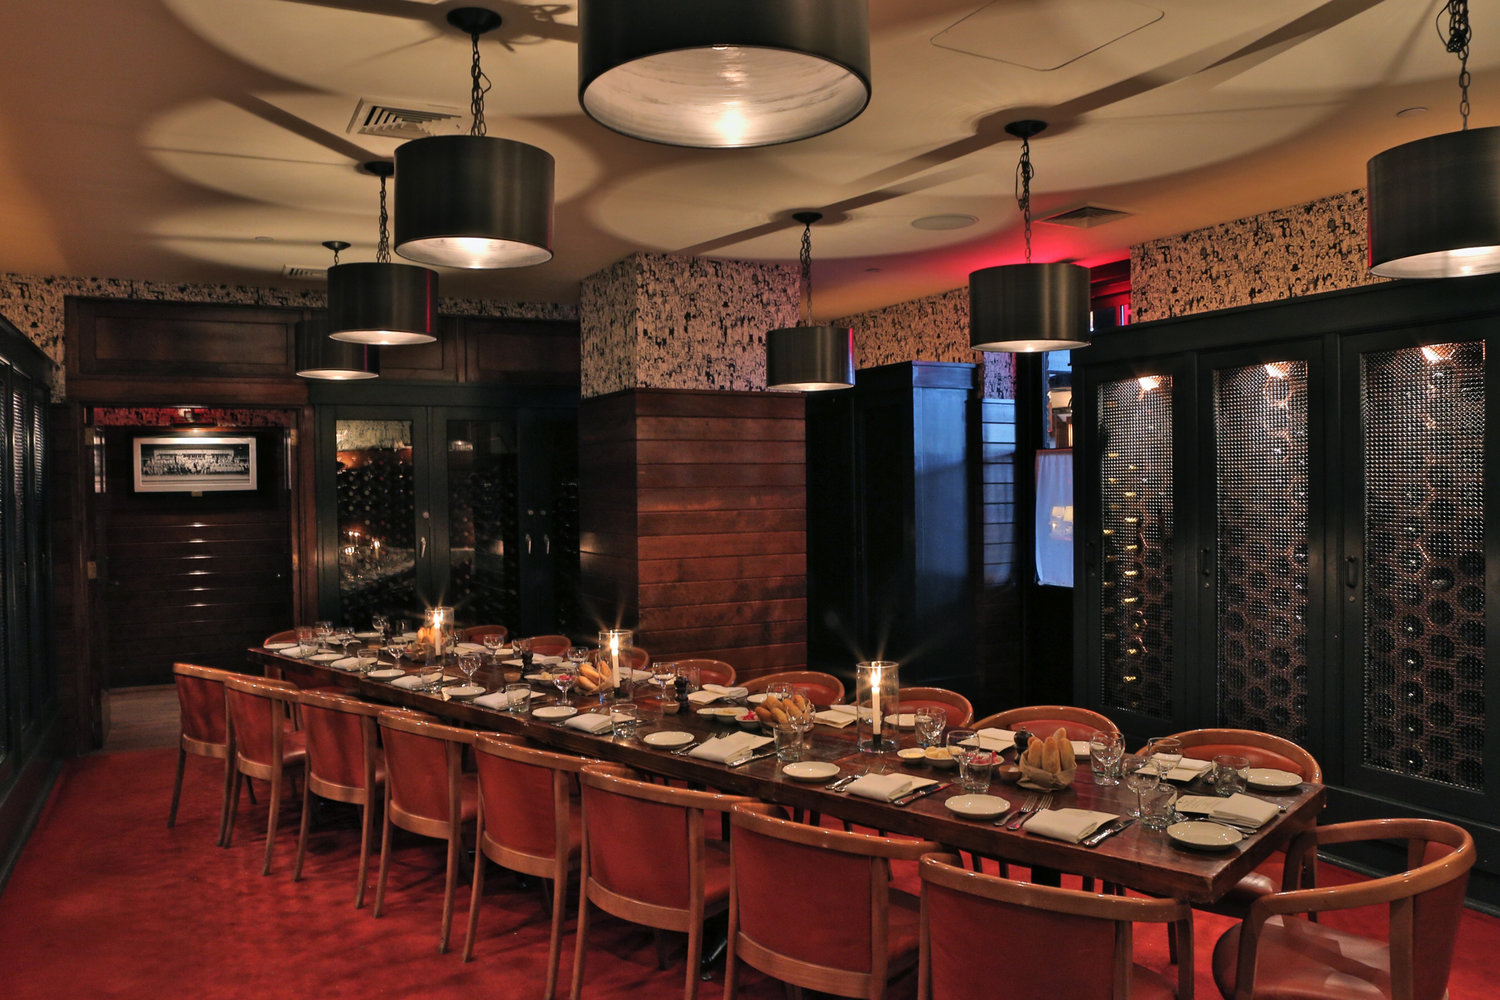 The Standard Grill event space in New York City, NYC, NY/NJ Area